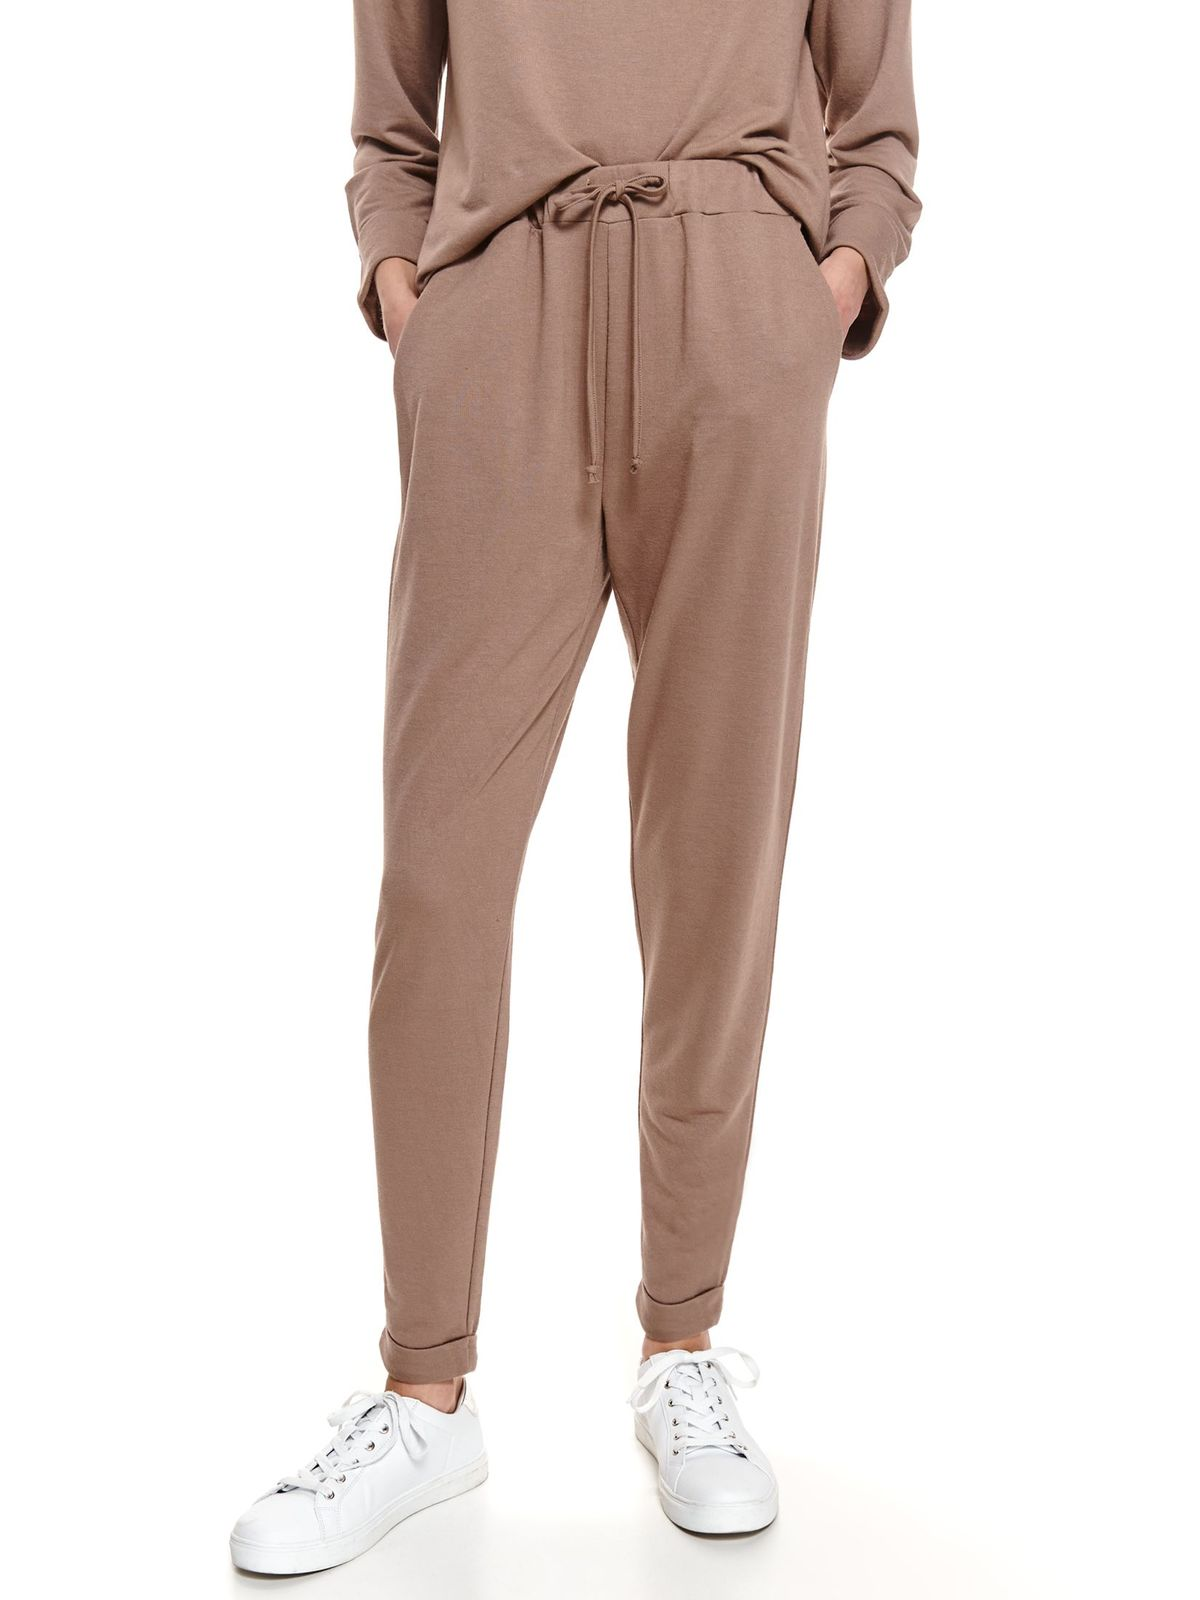 Peach trousers casual conical the pants have pockets